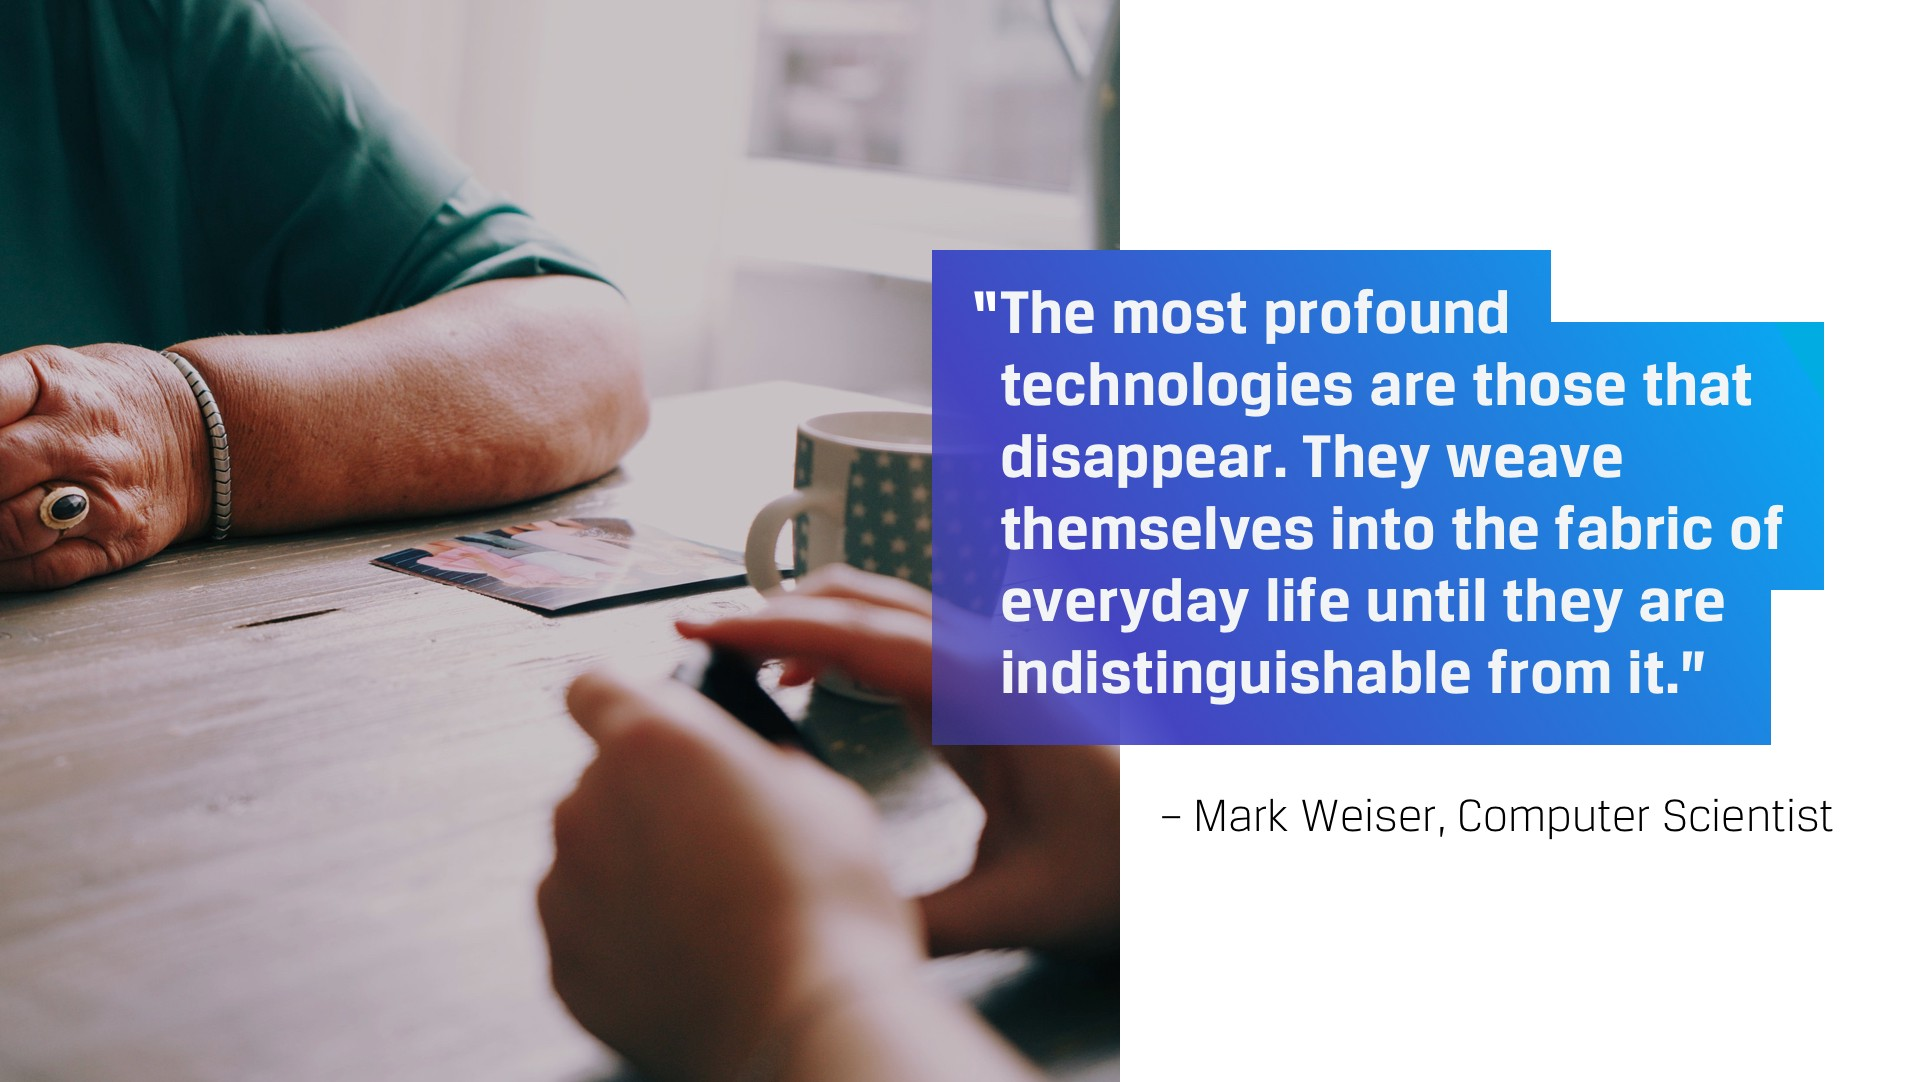 The most profound technologies are those that disappear. They weave themselves in the fabric of everyday life.—Mark Weiser